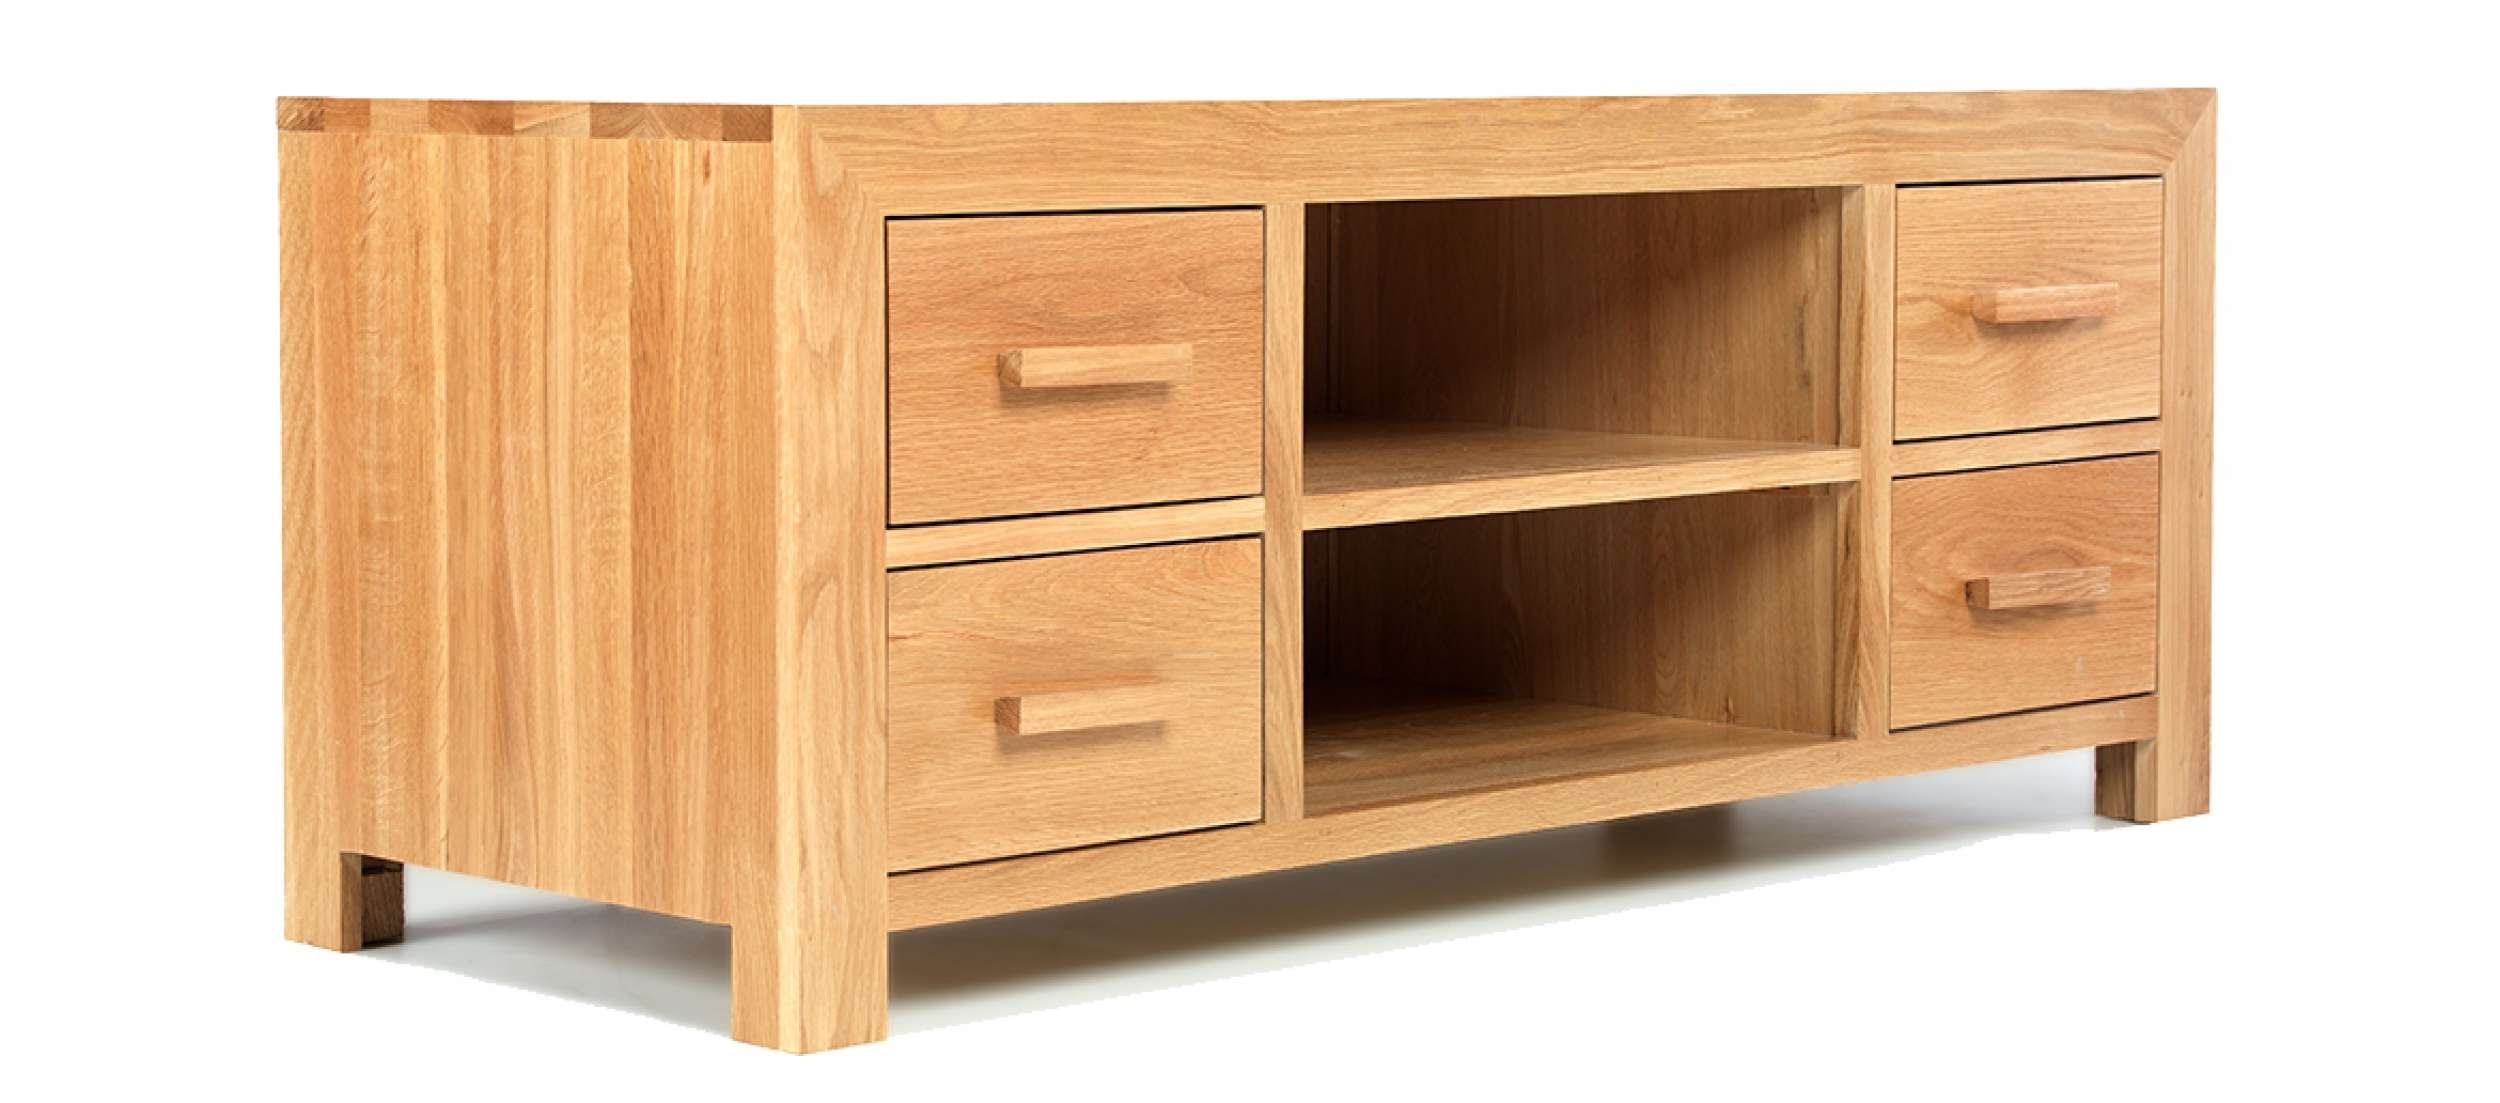 Cube Oak Plasma Tv Stand | Quercus Living With Regard To Solid Oak Tv Cabinets (View 4 of 20)